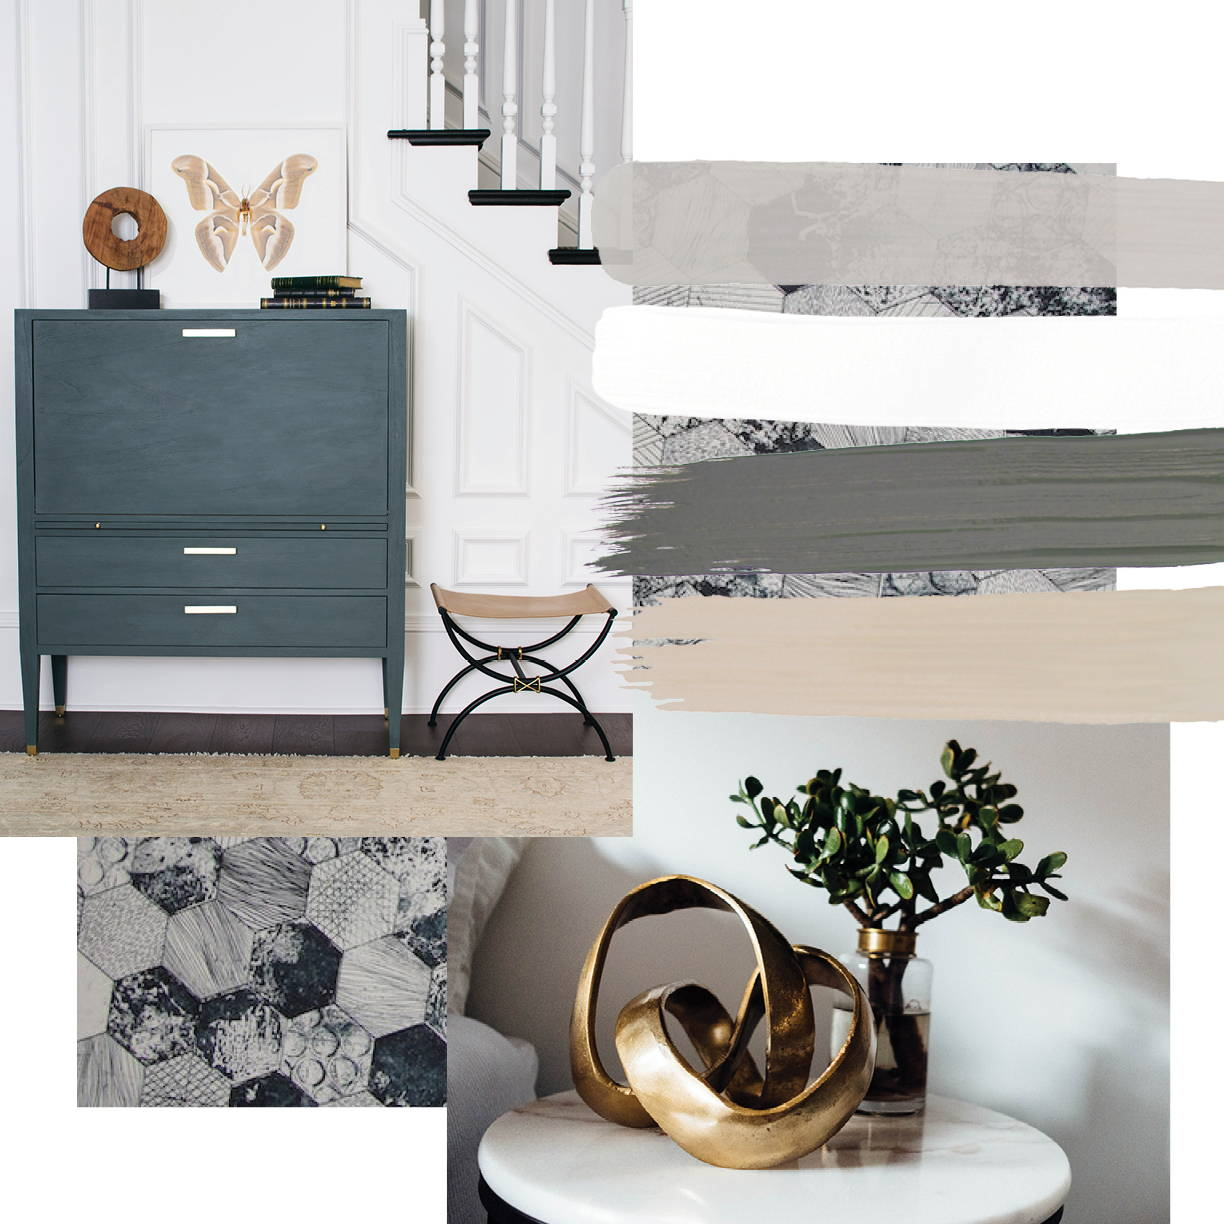 Transitional interior design style moodboard